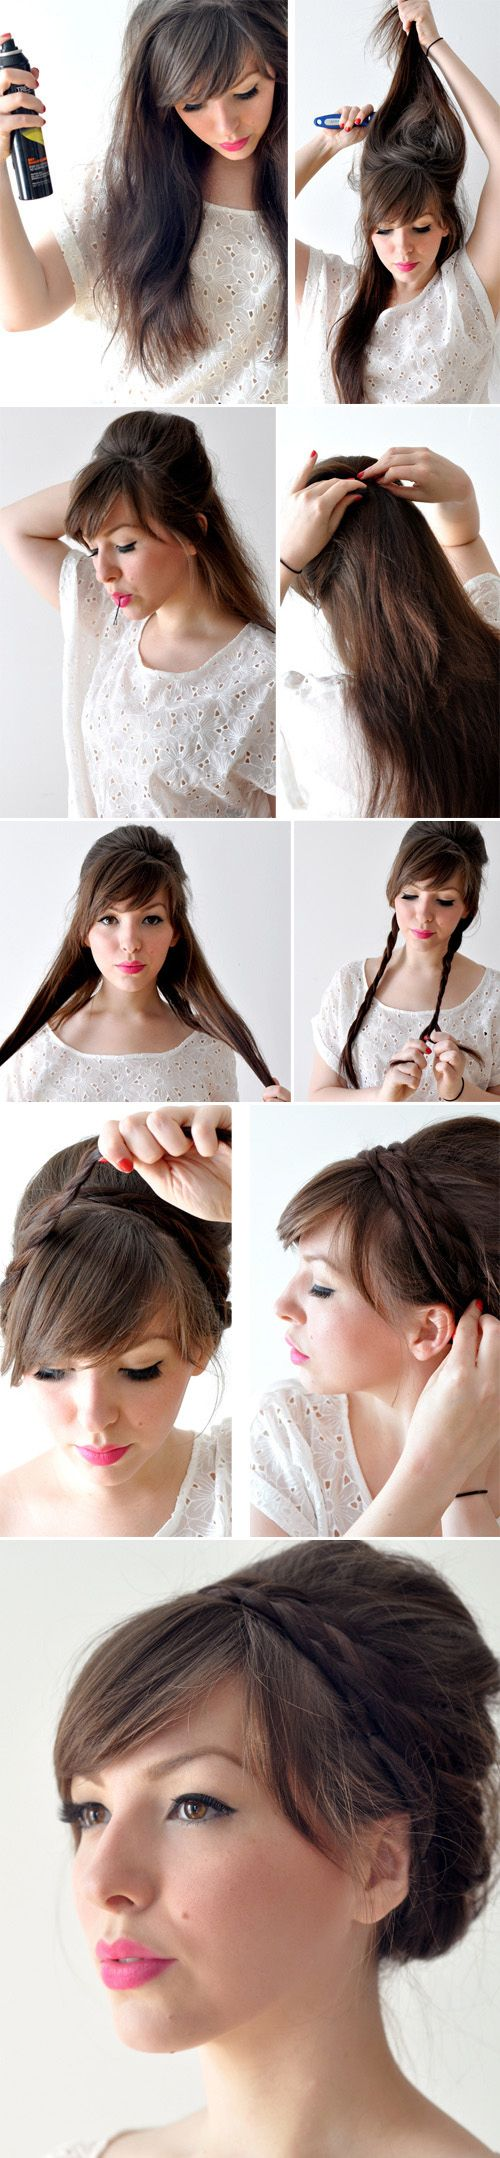 DIY Style Braided Updo Hairstyle Do It Yourself Fashion Tips | DIY Fashion Projects